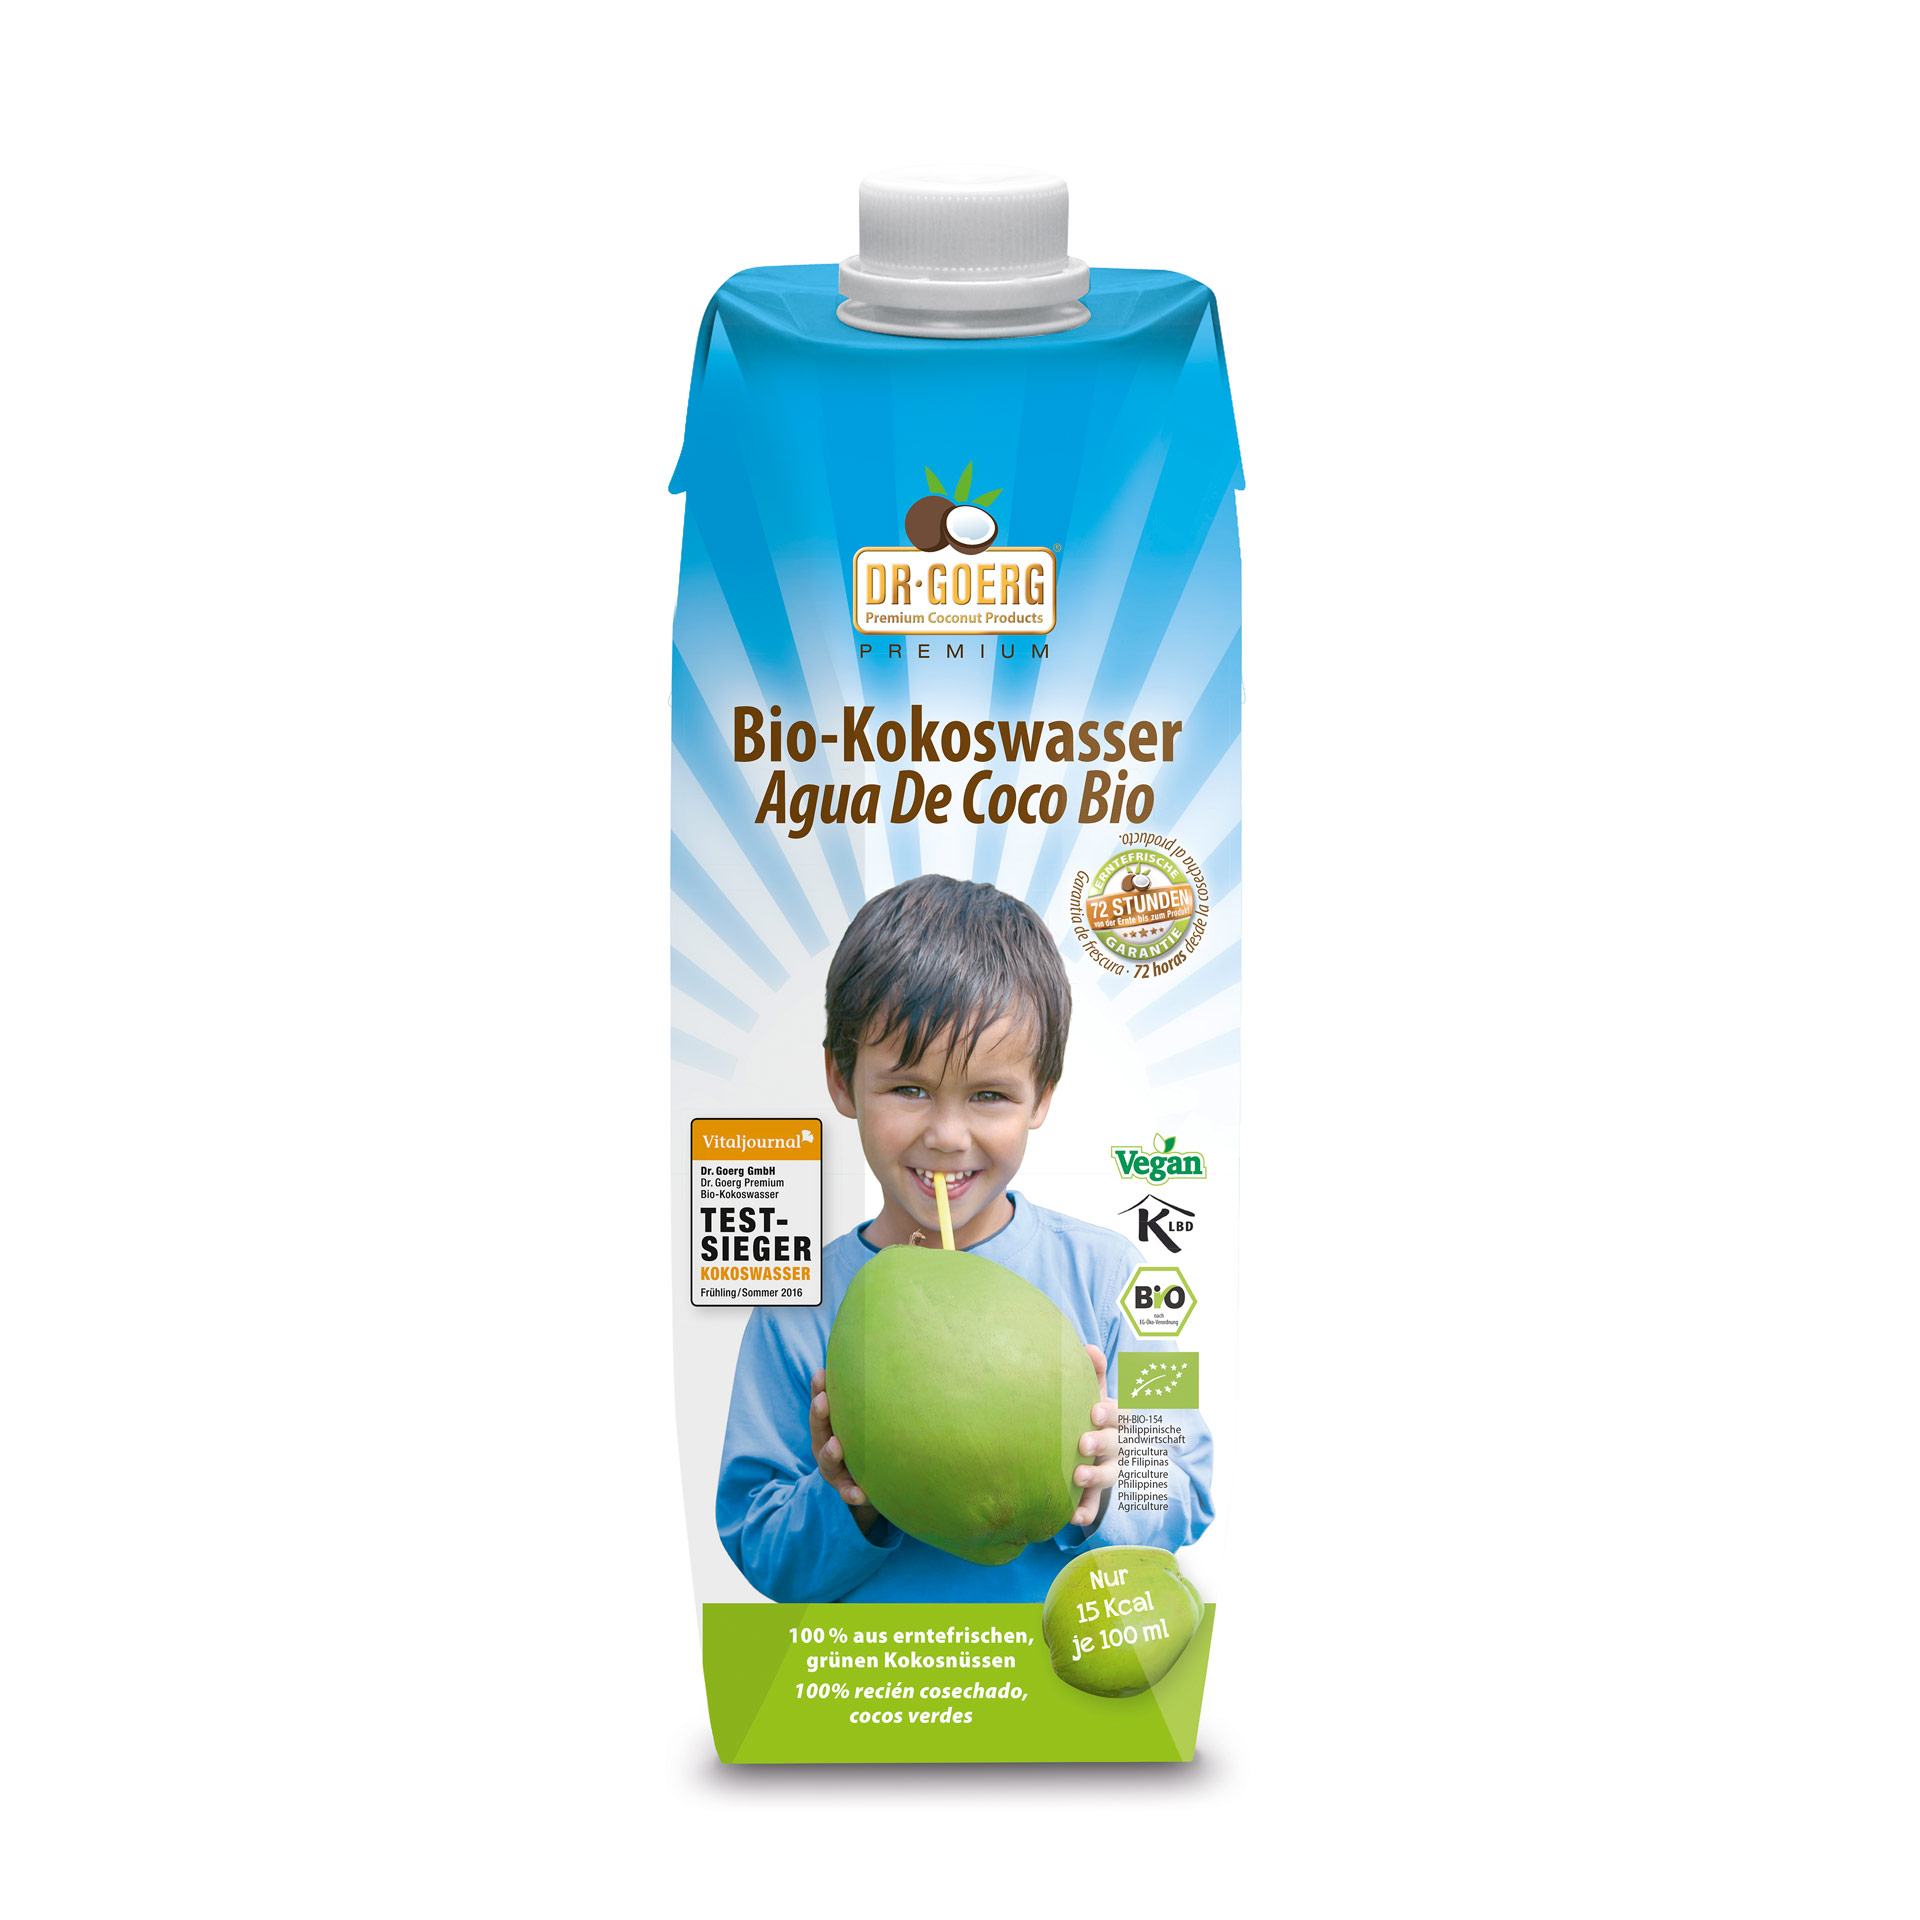 Kokoswasser, bio, 3er Pack, 1000 ml